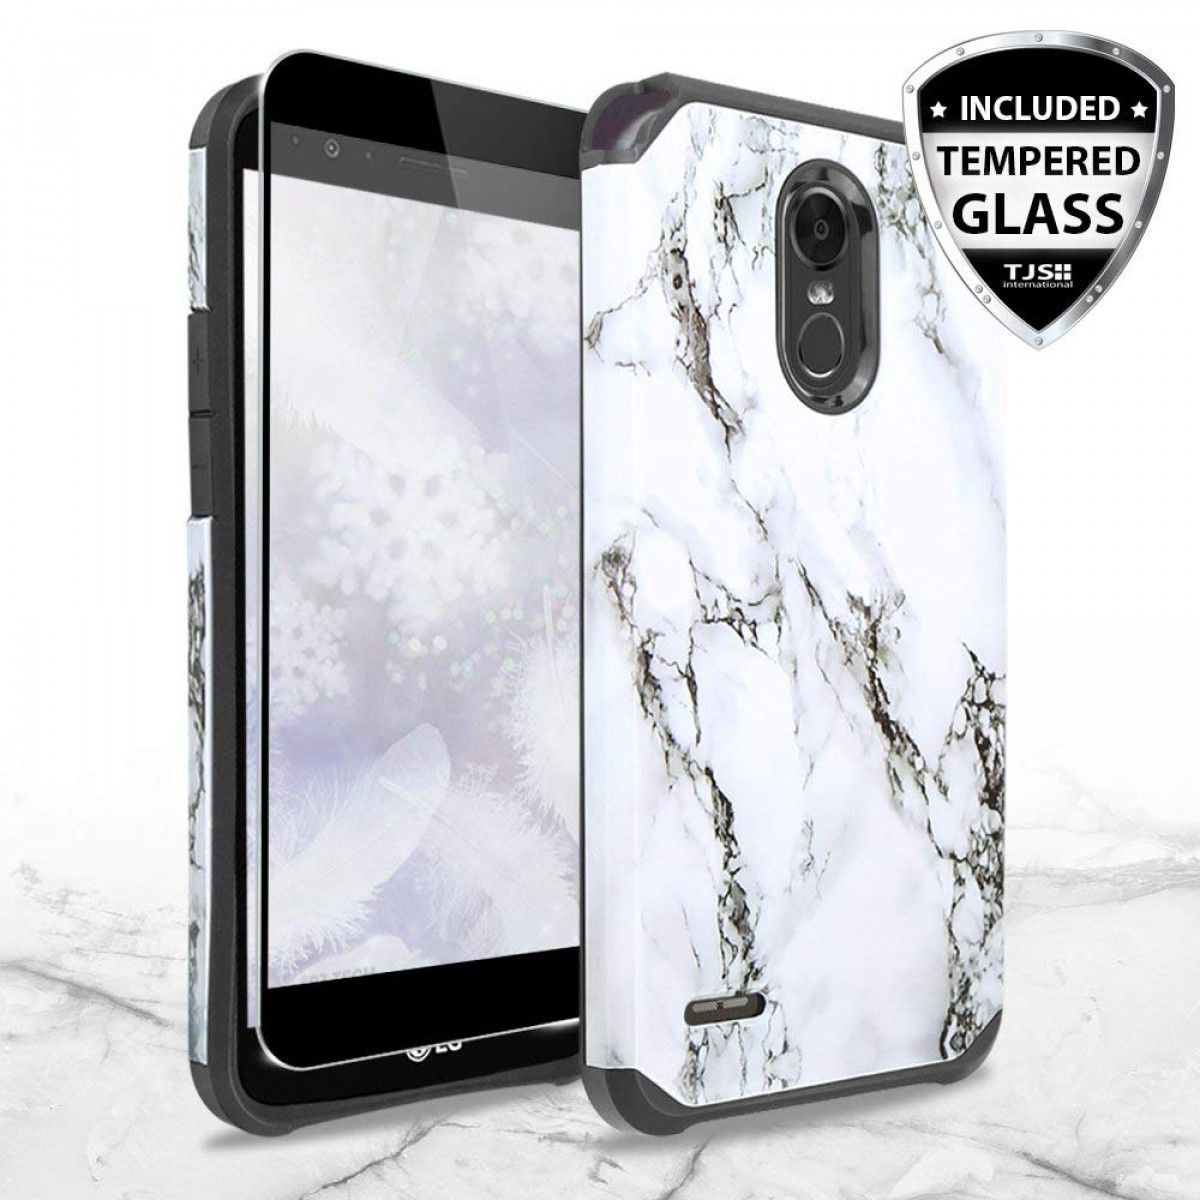 purchase cheap 84ae1 49bc5 LG Stylo 3 Case, LG Stylo 3 Plus Case, with TJS [Full Coverage Tempered  Glass Screen Protector] Ultra Thin Slim Hybrid Shockproof Drop Protection  ...